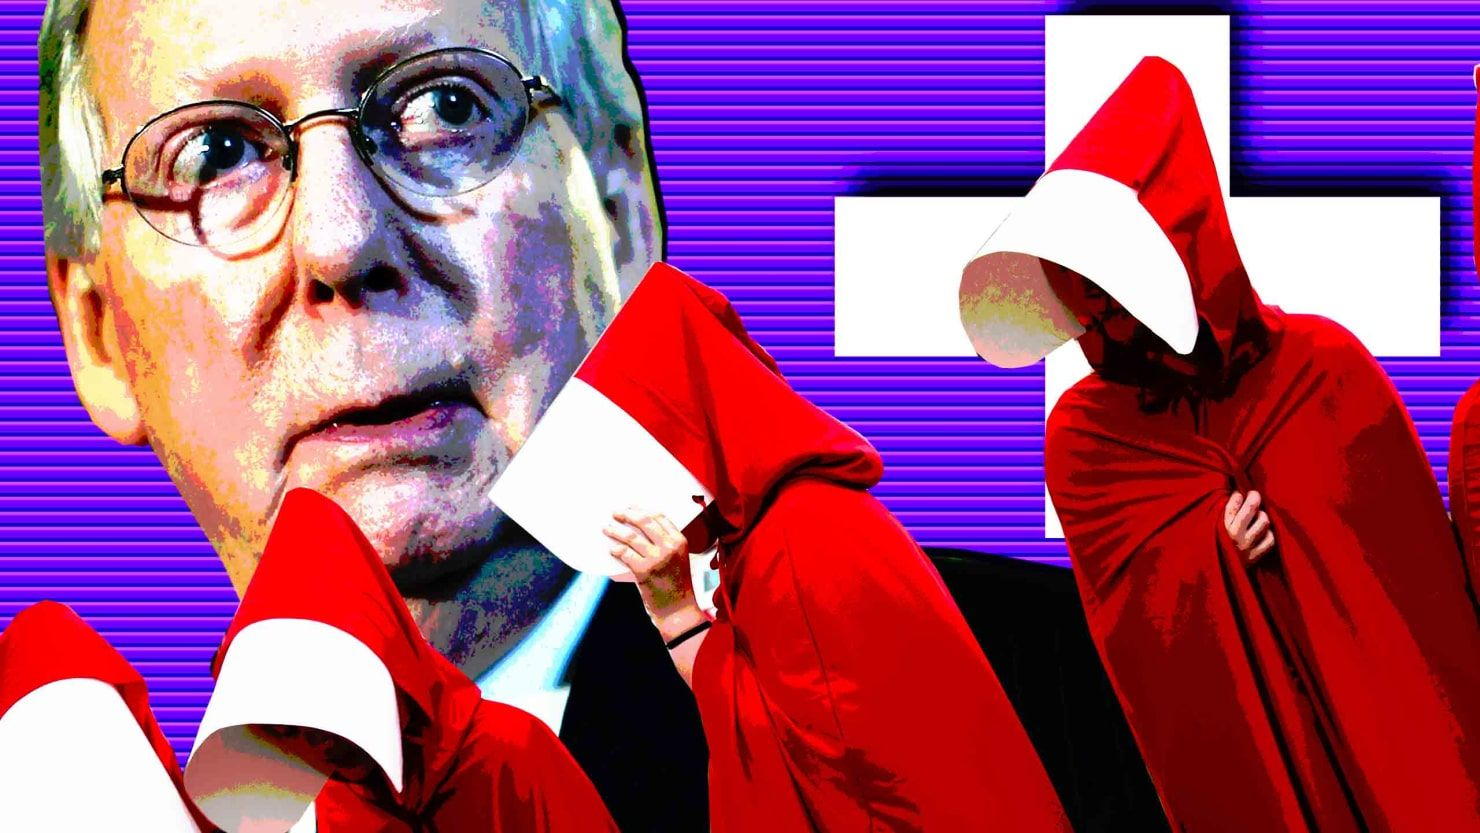 Mitch McConnell Gave Health Care Concessions to All Groups